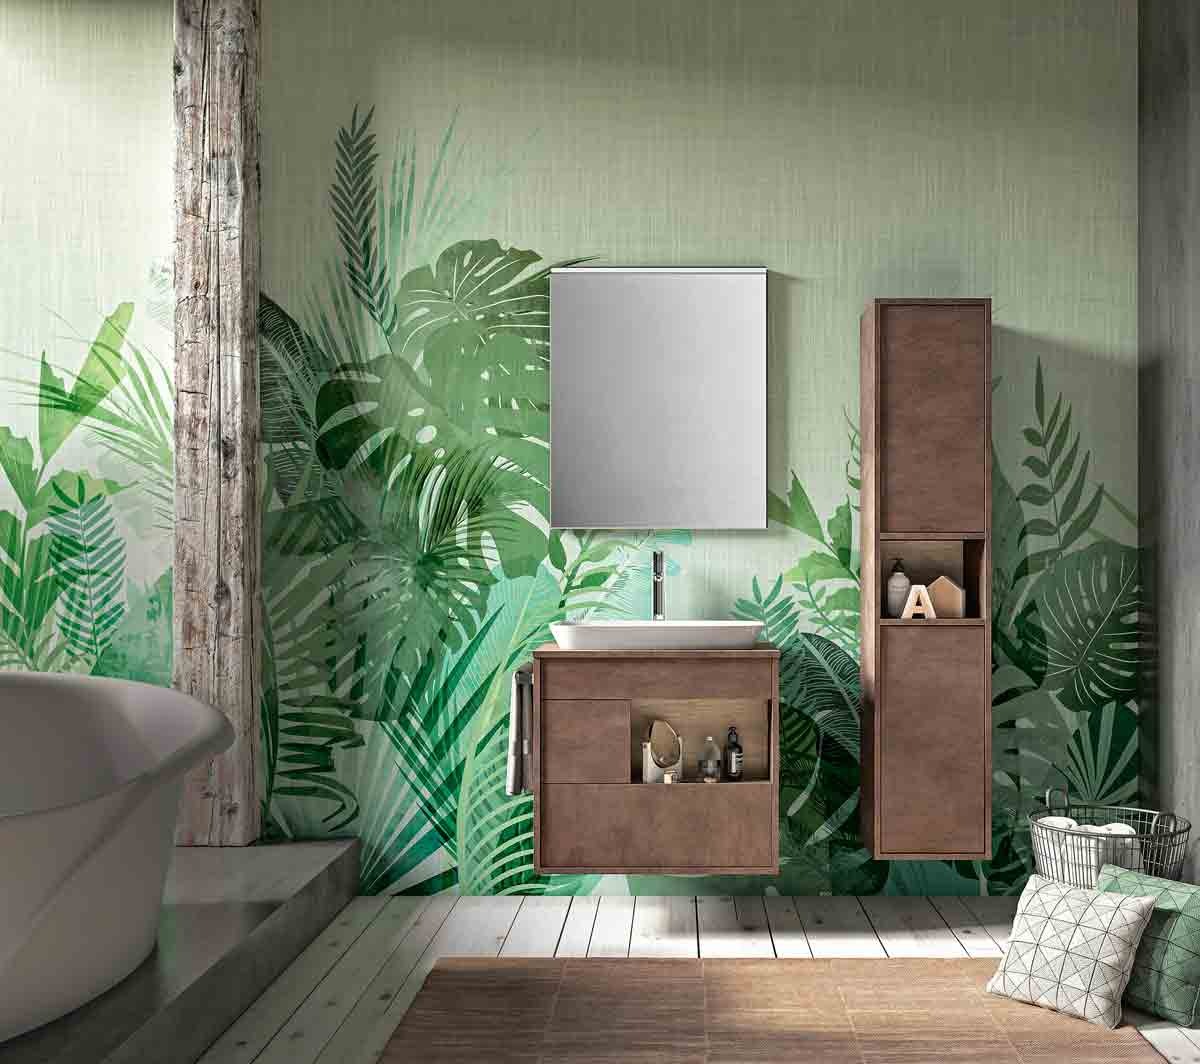 Beautiful Bathroom Color Schemes For 2018: The Latest Bathroom Trends And Bathroom Designs For 2019